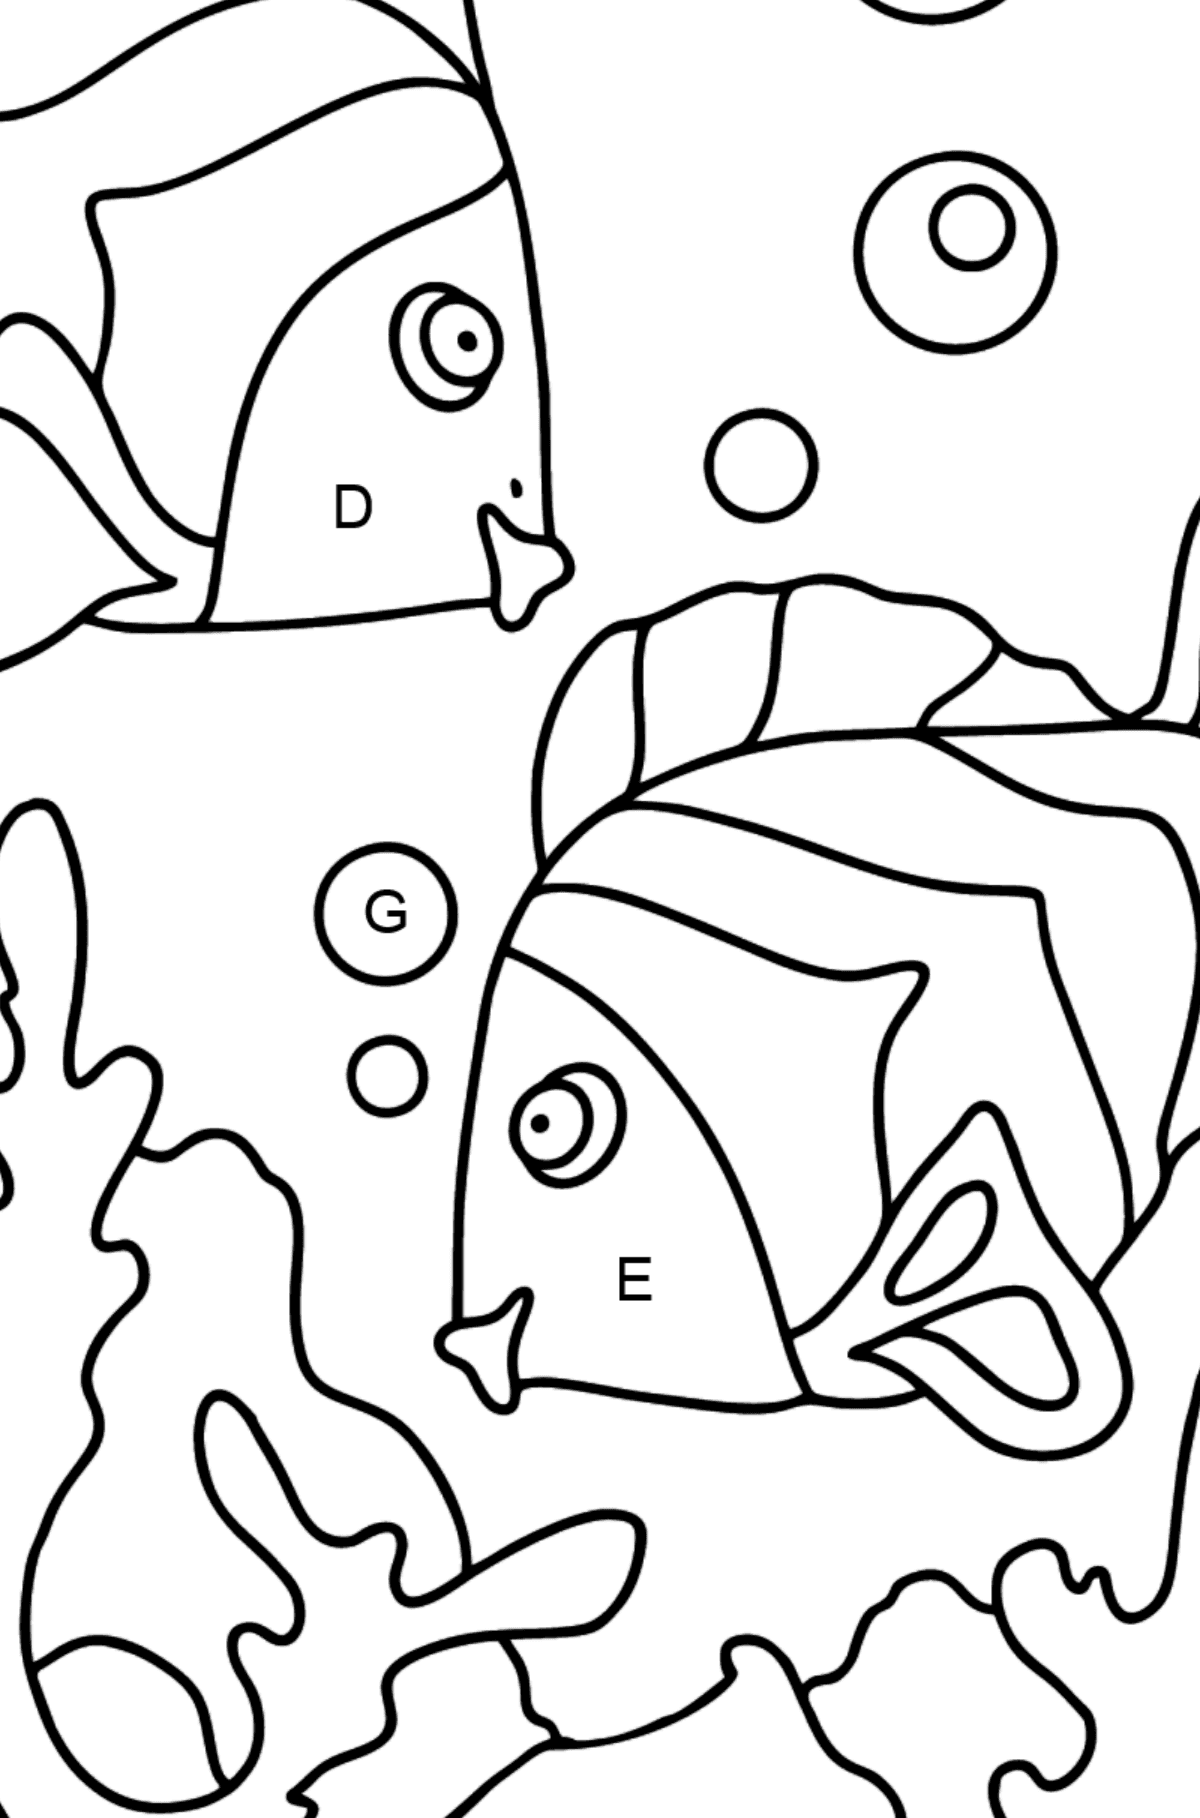 Coloring Page - Fish are Playing Happily - Coloring by Letters for Kids